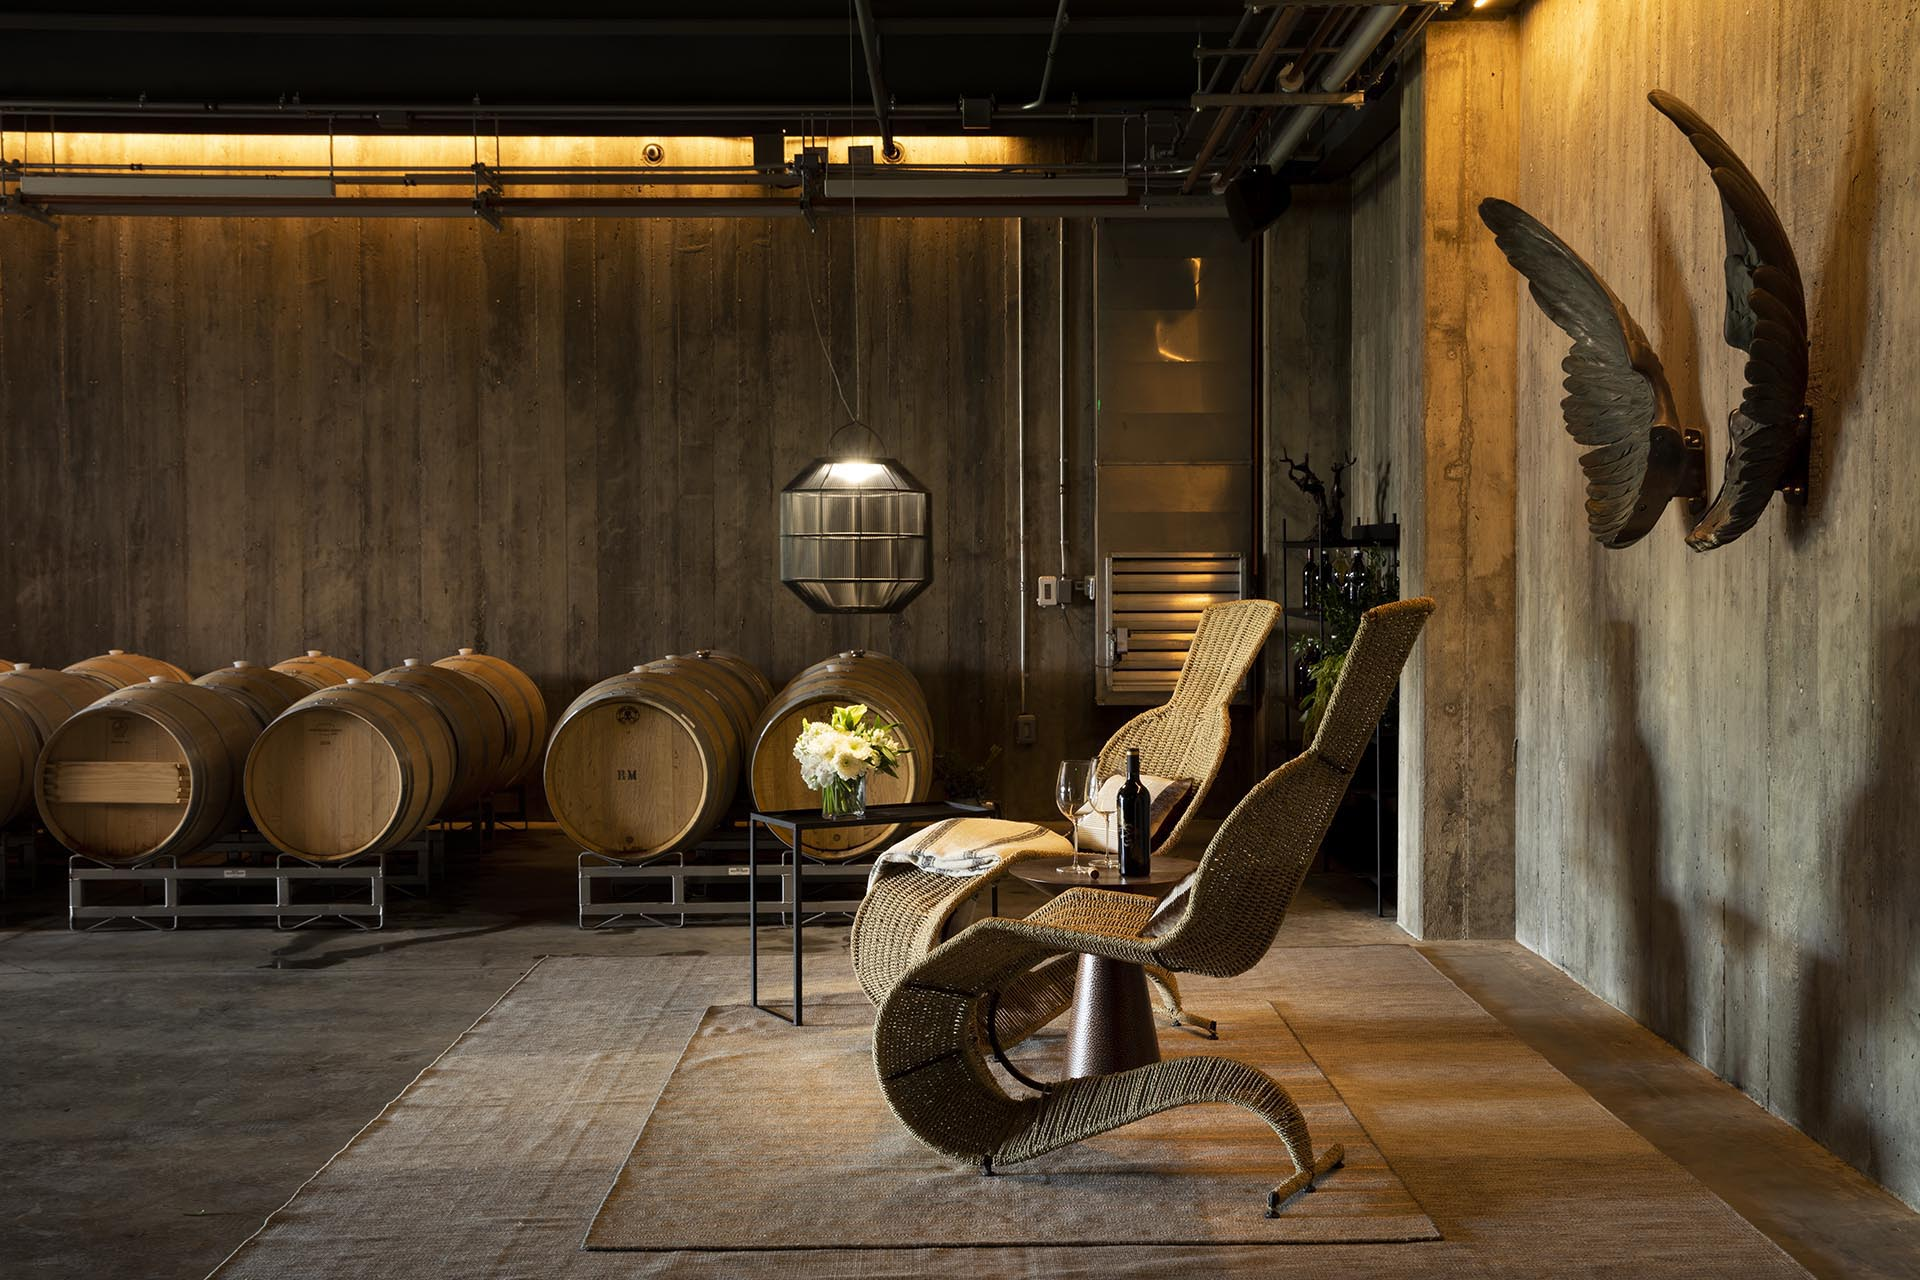 Interior seating area of Theorem Vineyards, with wood-lined room, oak barrels and wicker chairs